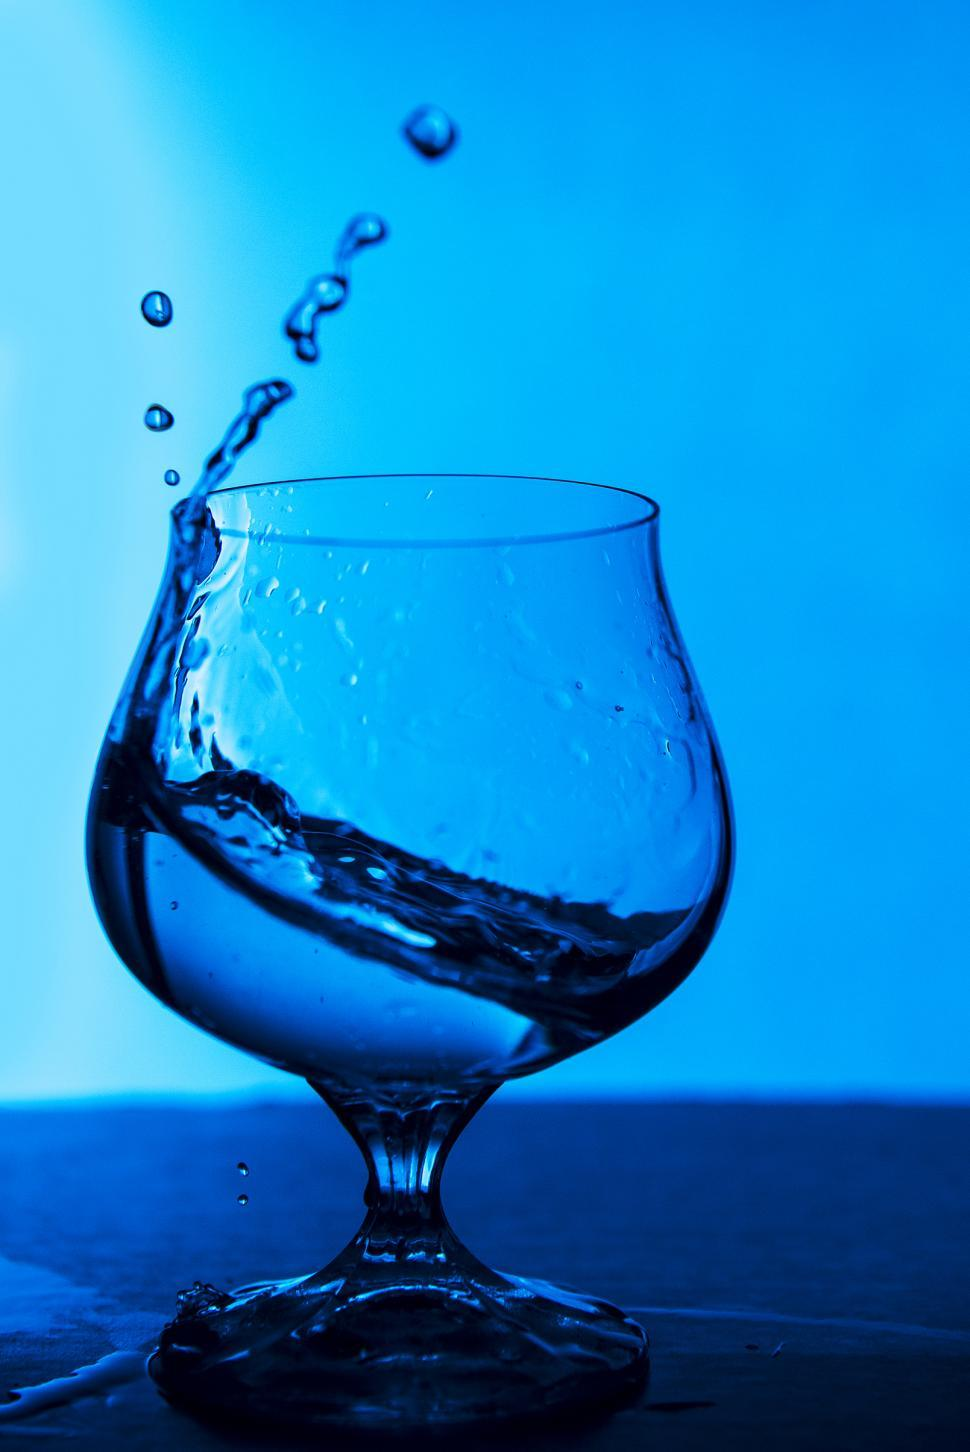 Download Free Stock Photo of Glass of Water